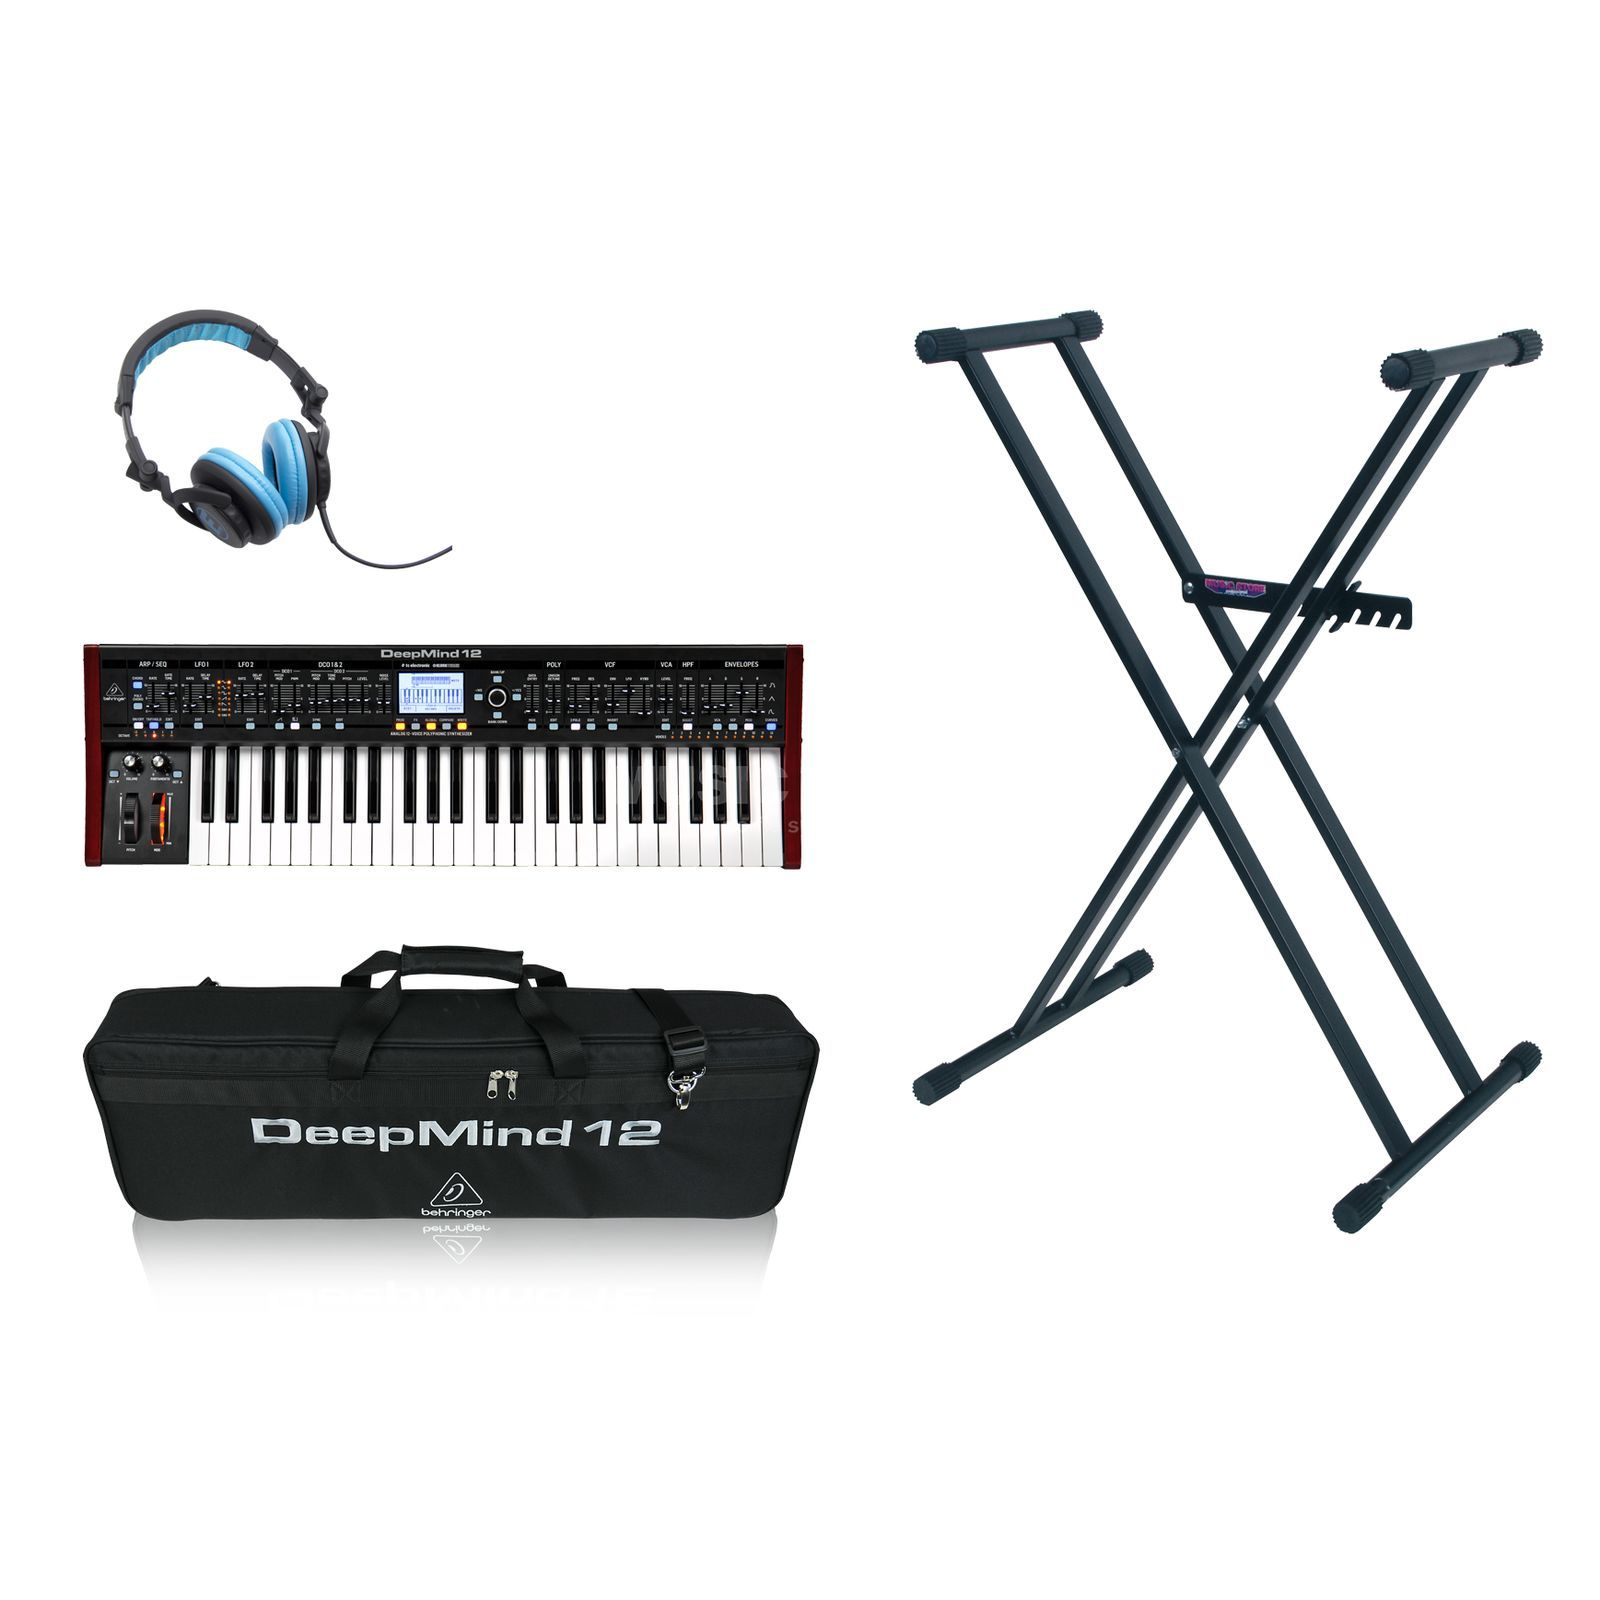 Behringer DeepMind 12 + Bag + Stand -Set Product Image